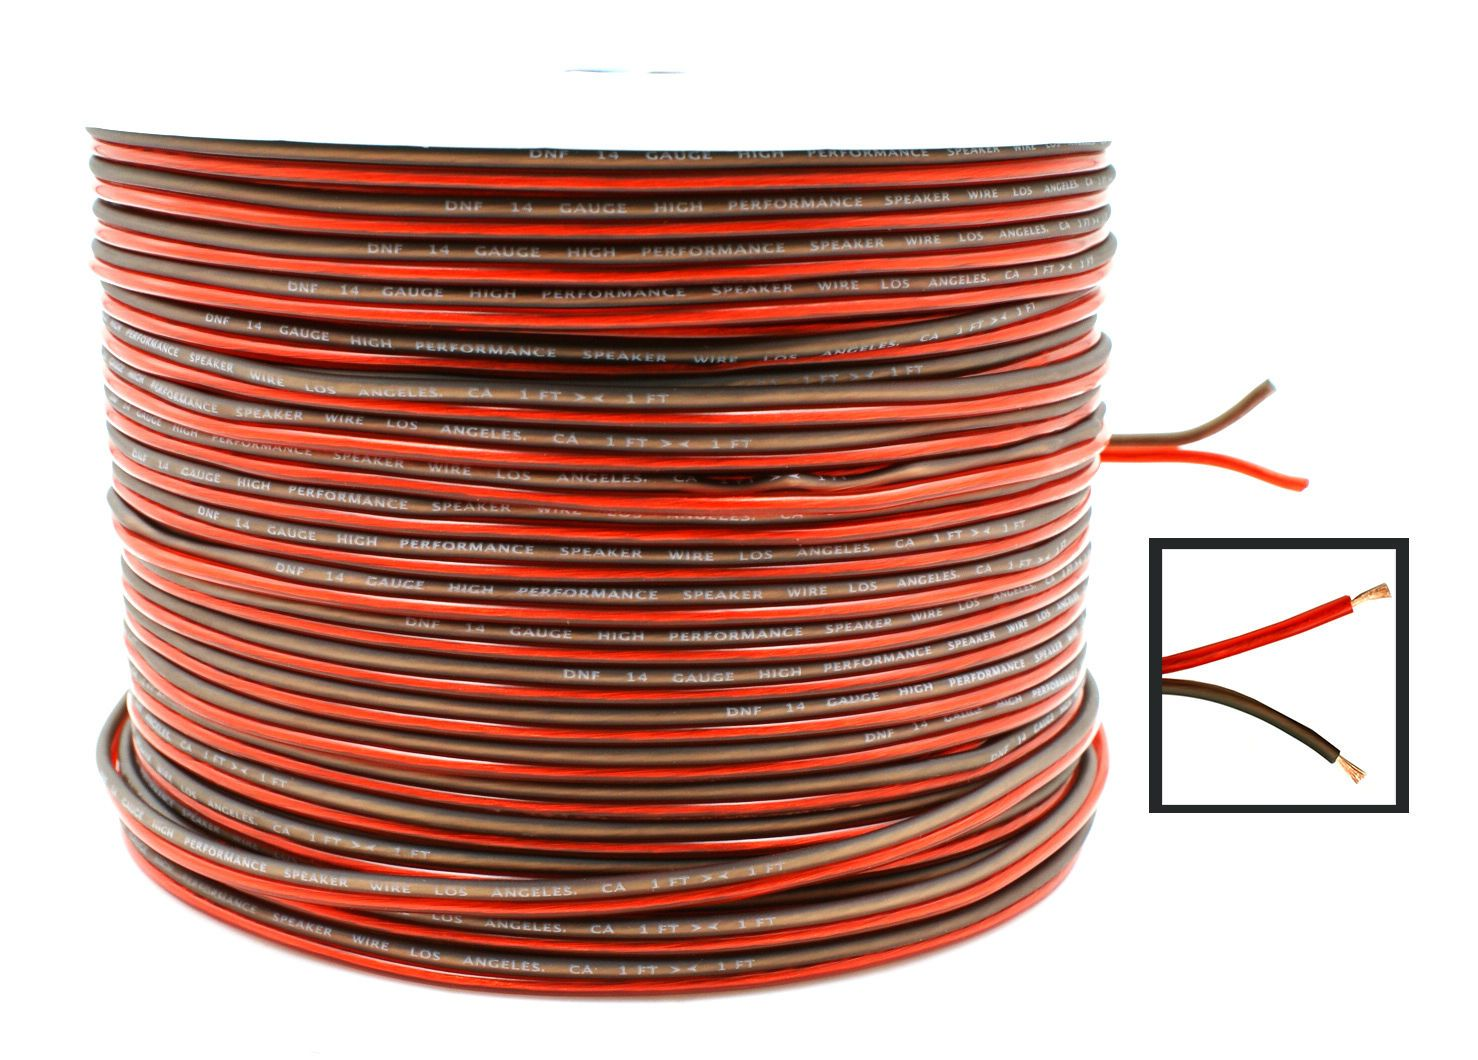 Audio Cables and Interconnects: Dnf 14 Gauge Speaker Wire For Car ...